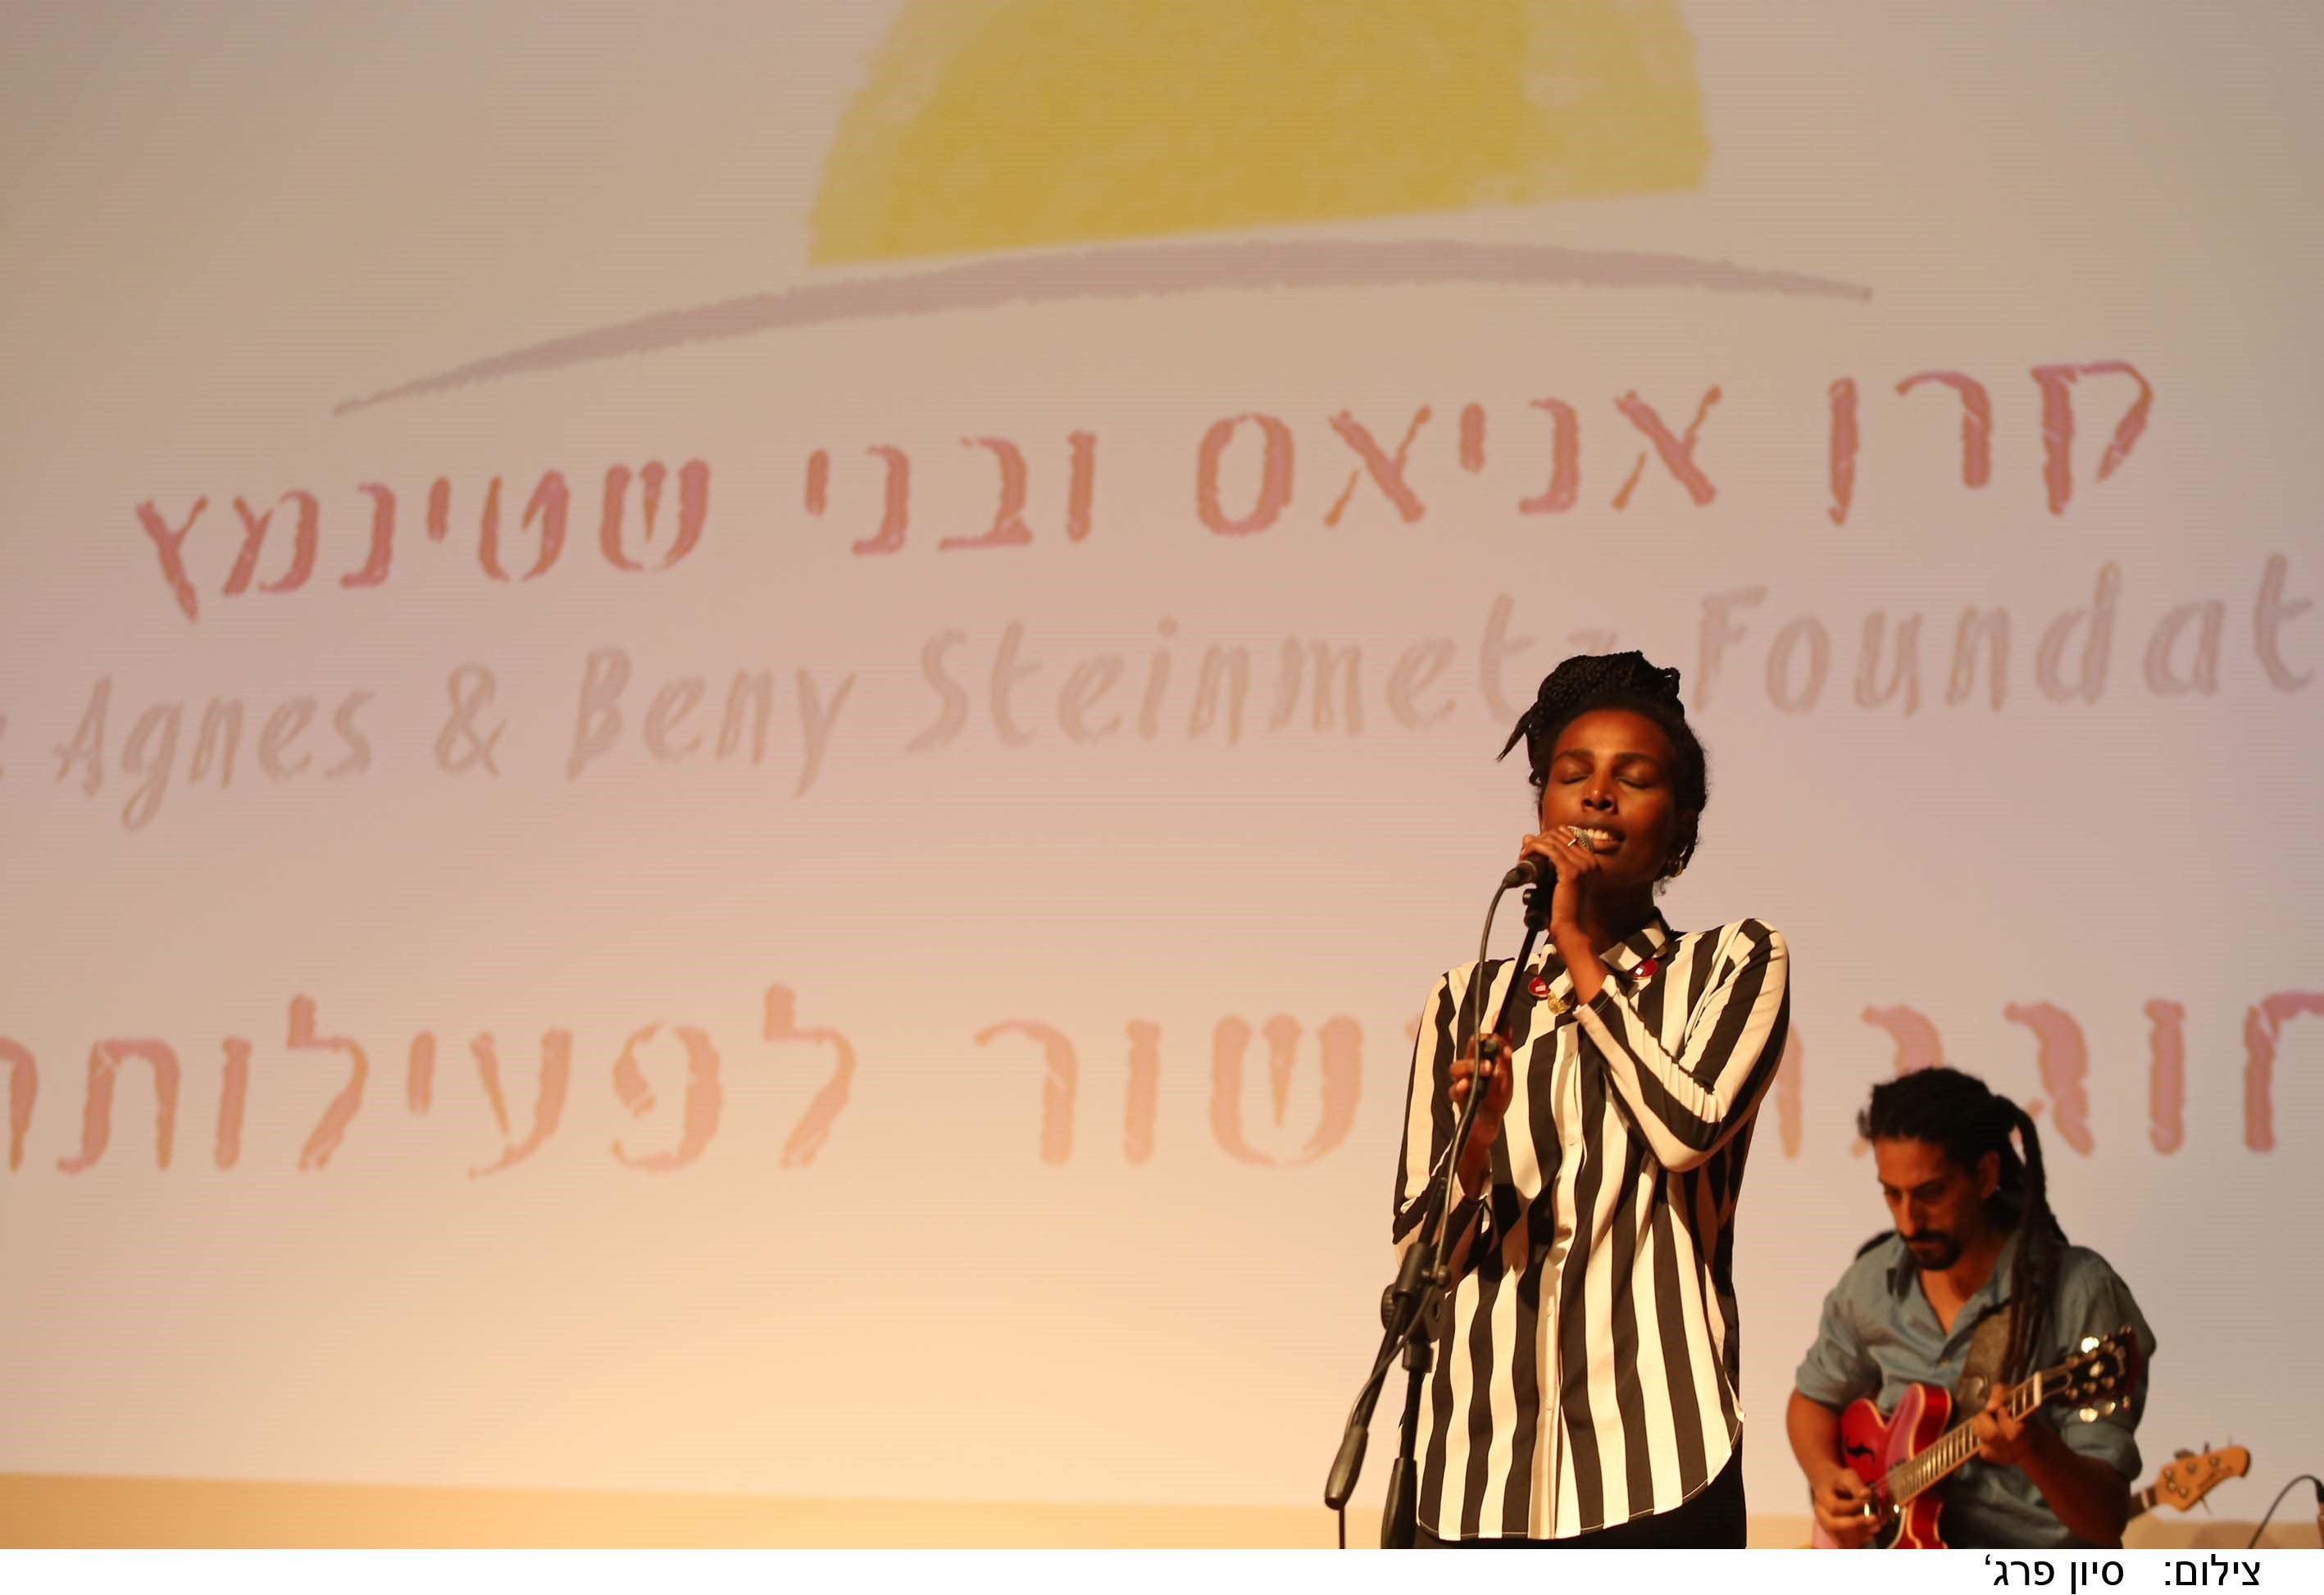 Singer at the 10th Anniversary of the Agnes and Beny Steinmetz foundation